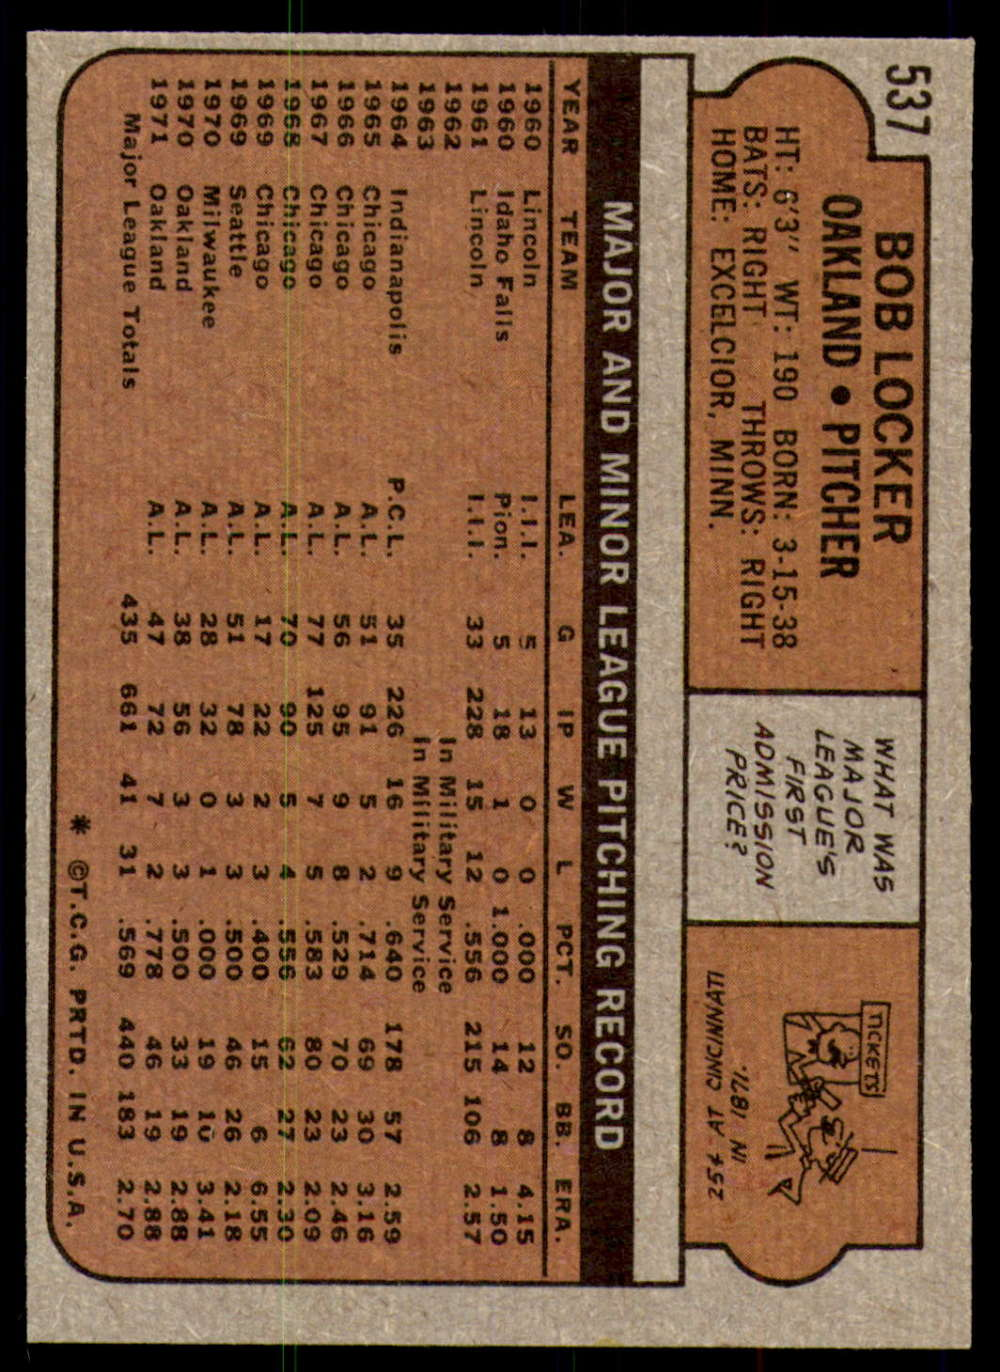 1972-Topps-Baseball-Set-497-787-Pick-Your-Card-Each-Card-Scanned-Front-amp-Back thumbnail 47